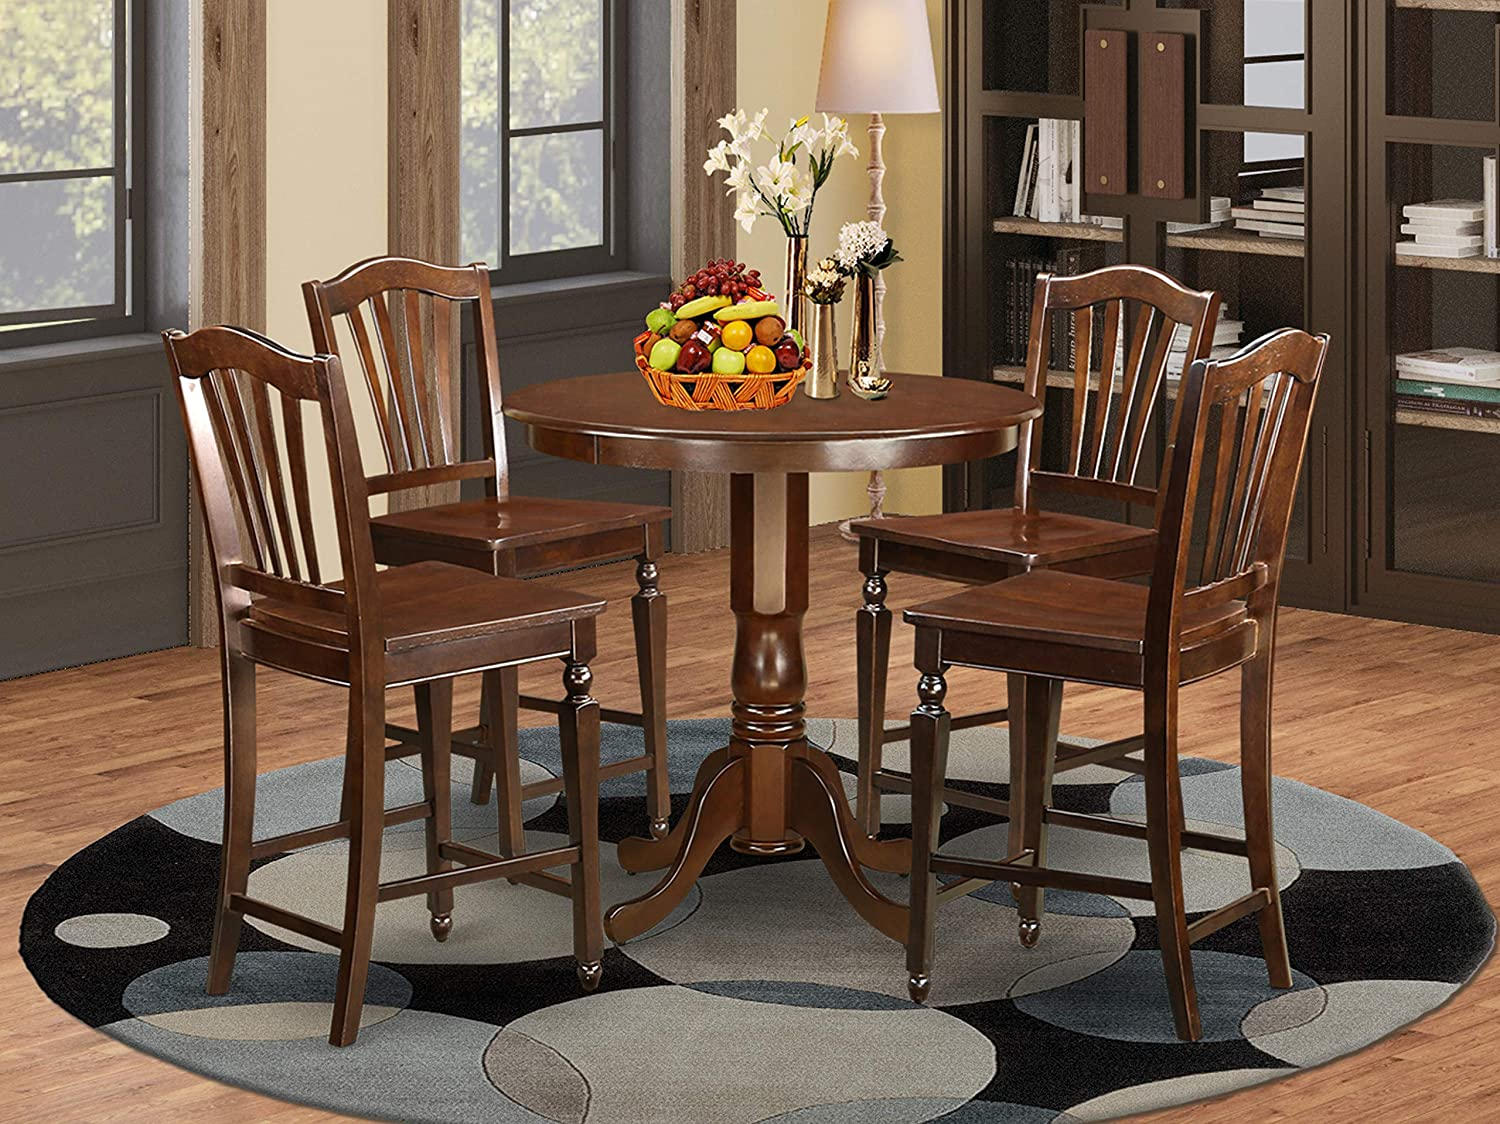 5 Pc Dining counter height set - counter height Table and 4 bar stools.